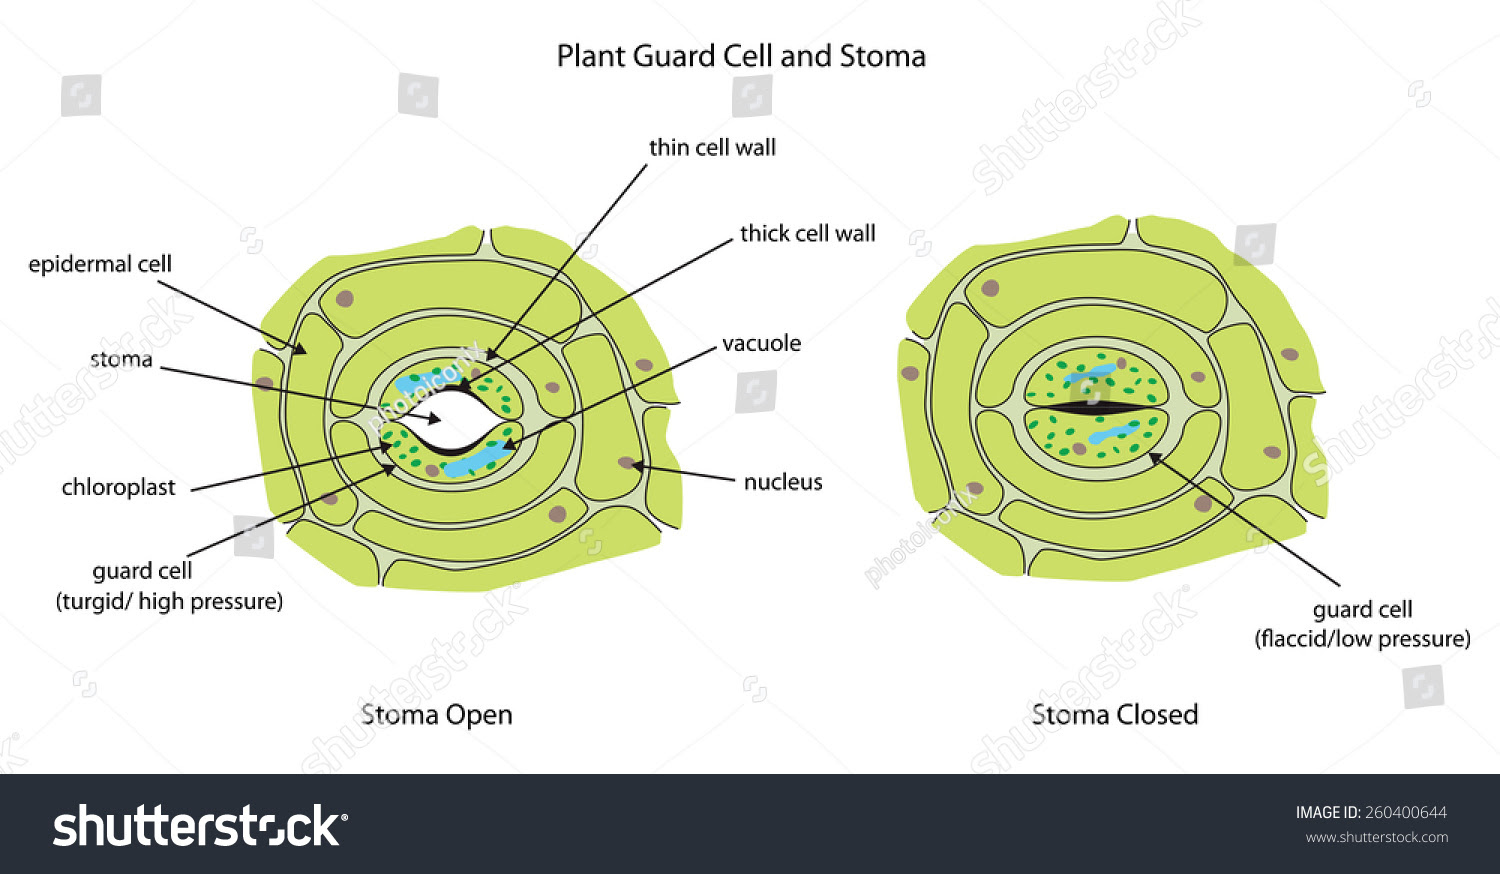 Labeled Diagram Showing Plant Stoma Open And Closed. Stock ...